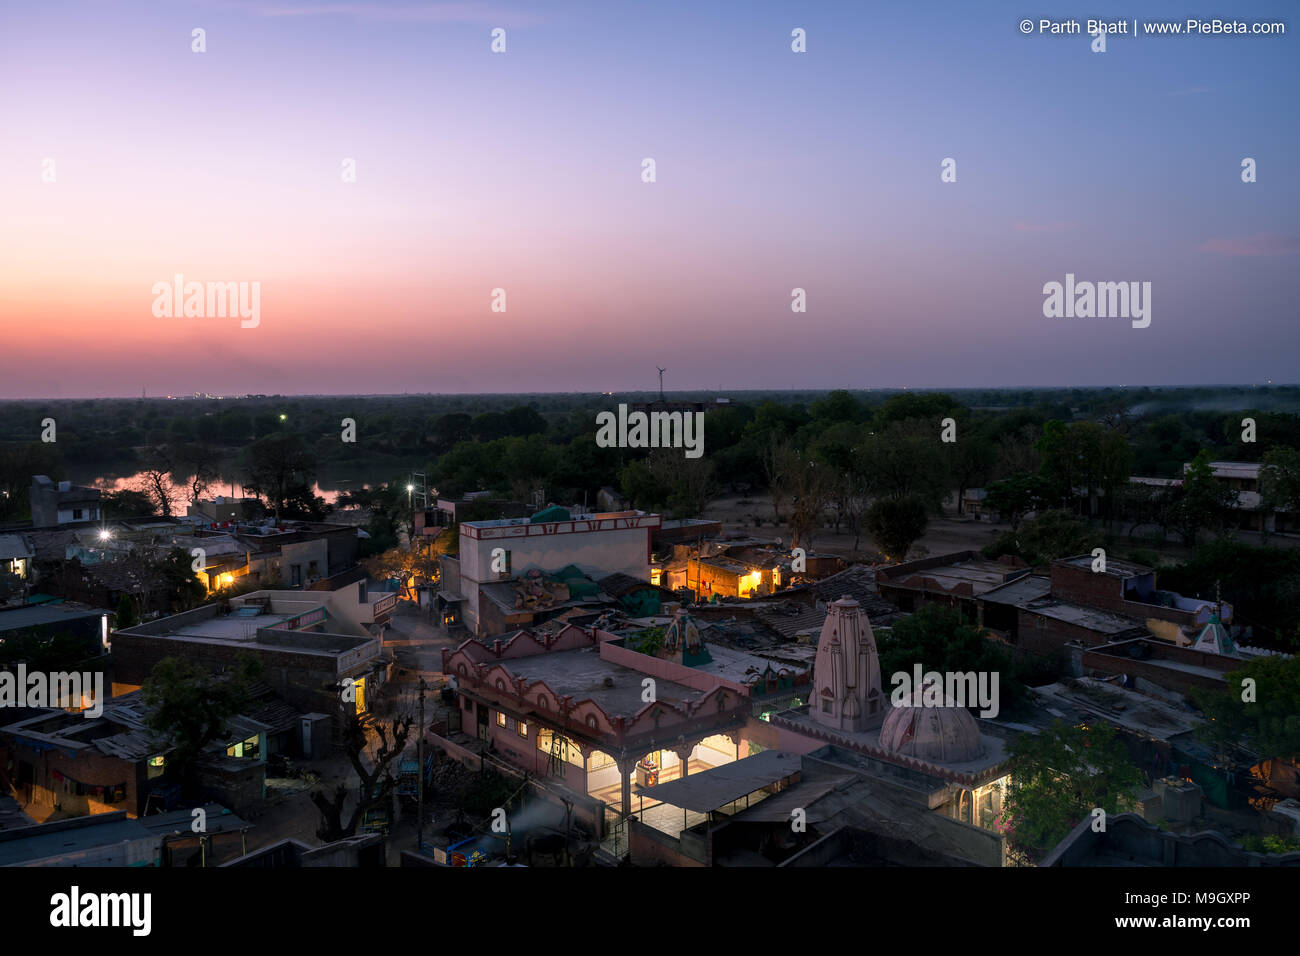 Place-Godhavi, Ahmedabad State Gujarat, India. March-26-2018. Photo of ariel view of Godhavi village near Ahmedabad city - Stock Image